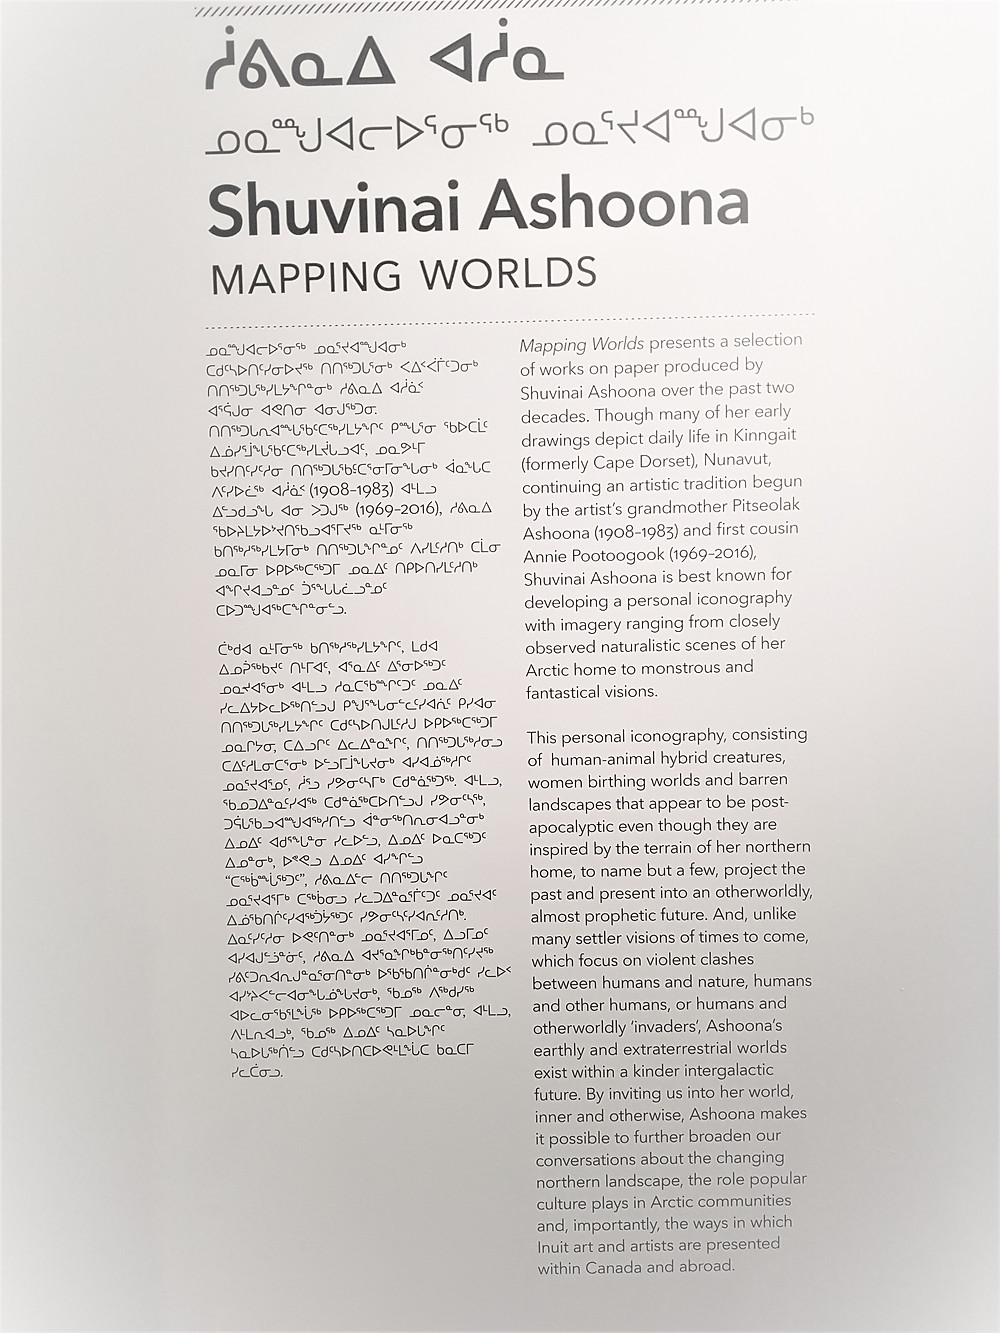 Shuvinai Ashoona Mapping Worlds exhibition at the Power Plant with wall text in english and inuktitut.